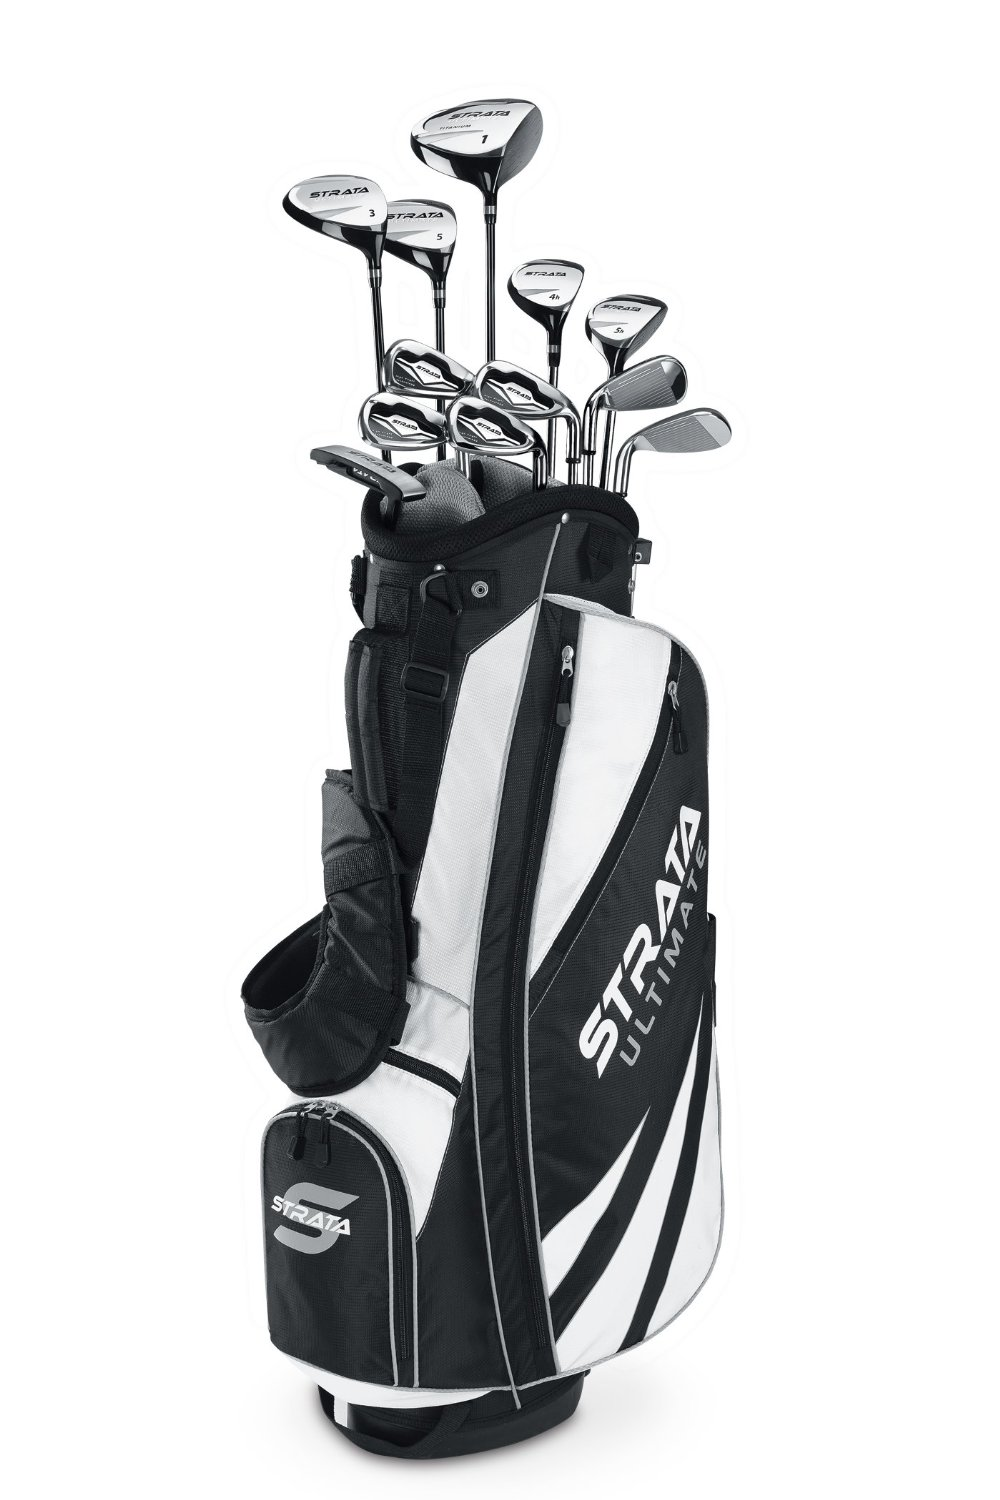 Mens Callaway Strata Ultimate Complete Golf CLub Set with Bag